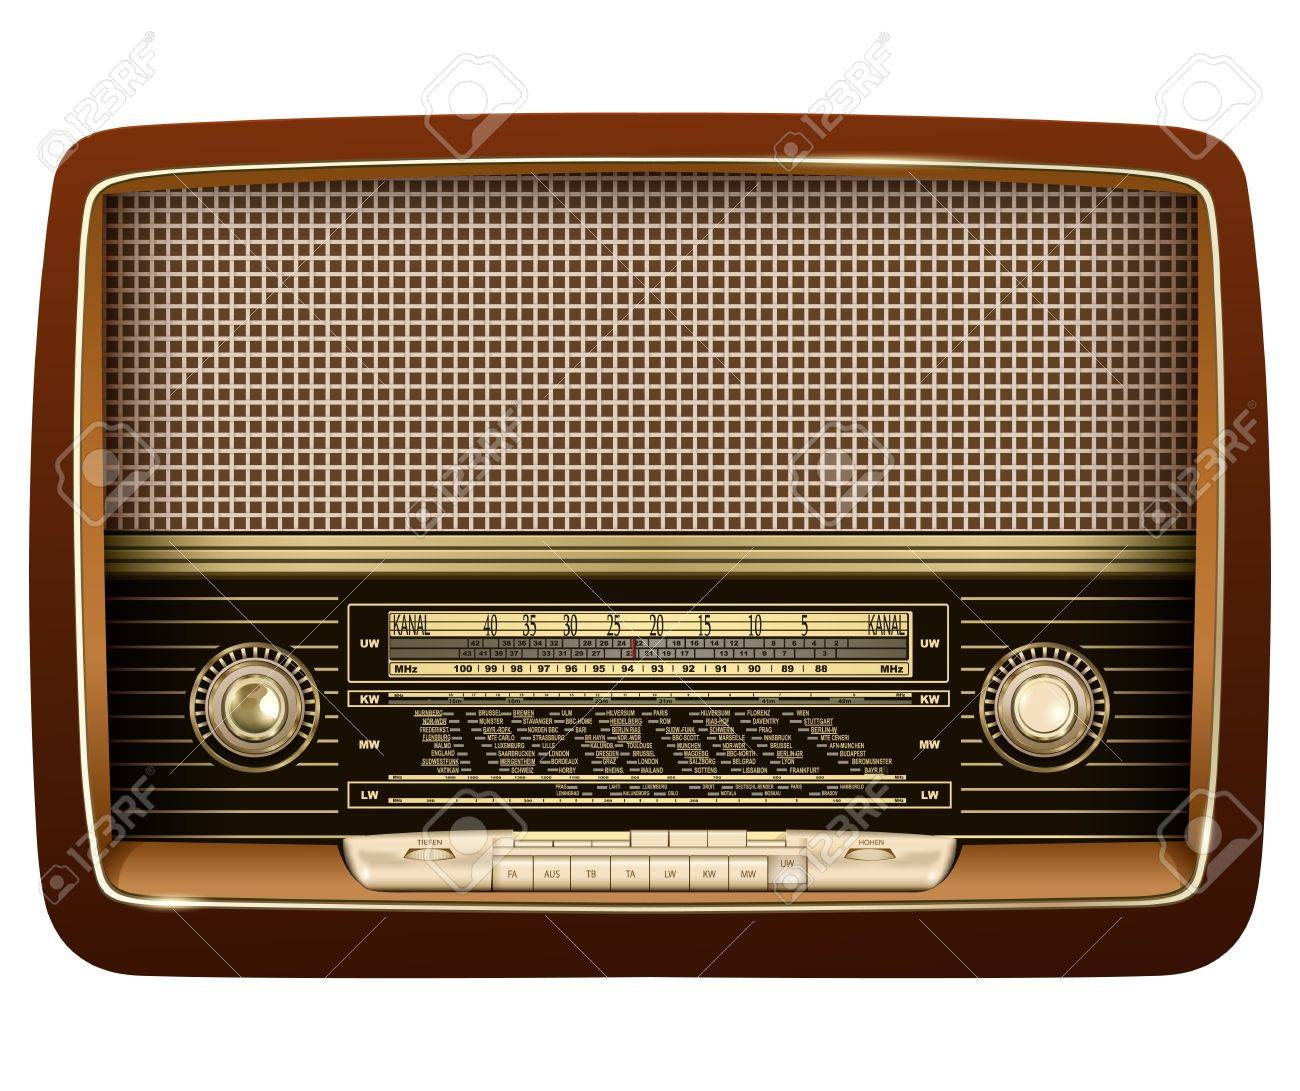 Retro radio, realistic vector illustration. Stock Vector - 22081015